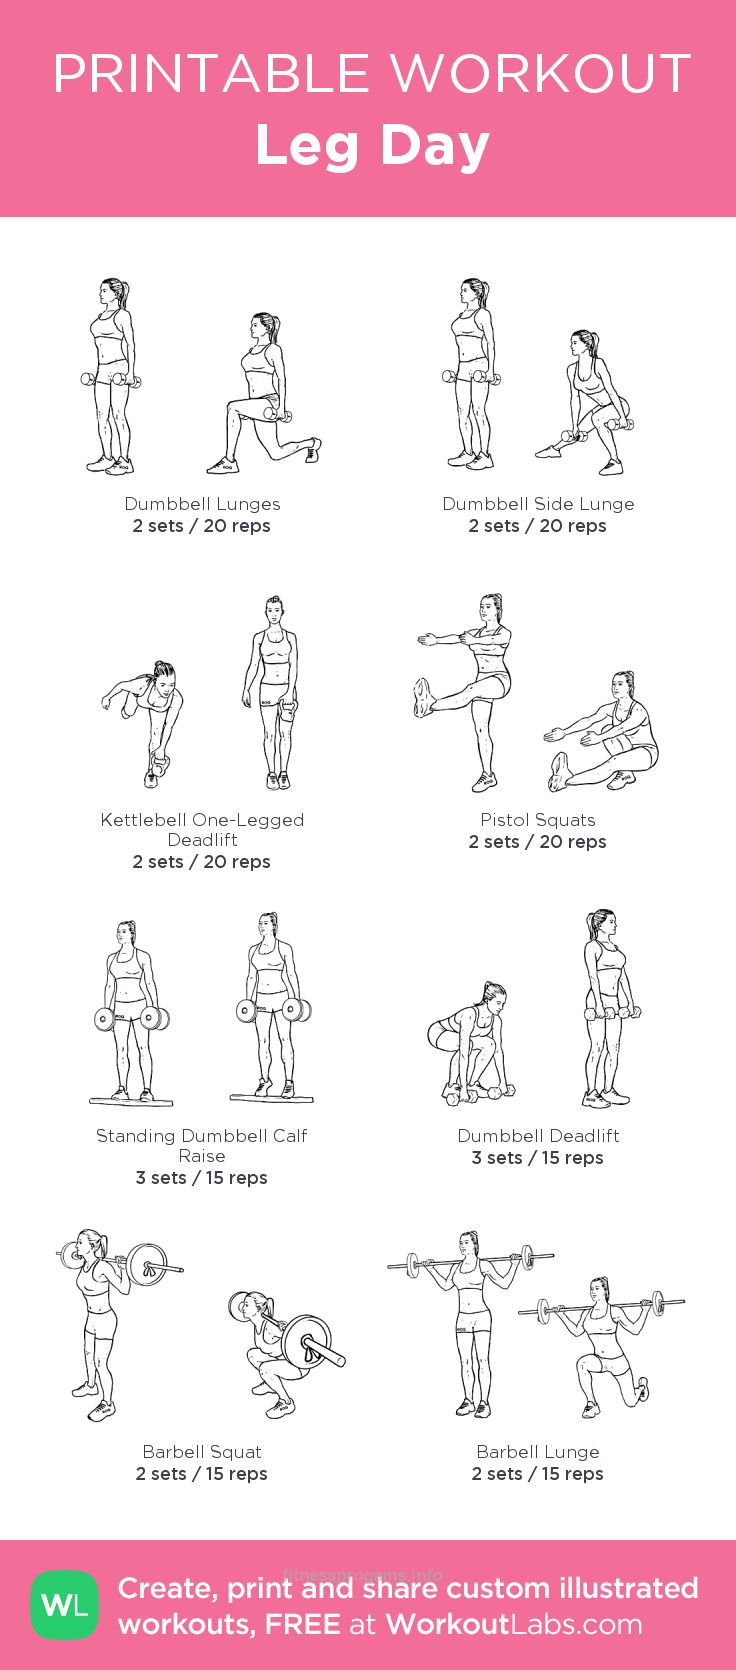 This is a photo of Sizzling Printable Gym Workouts